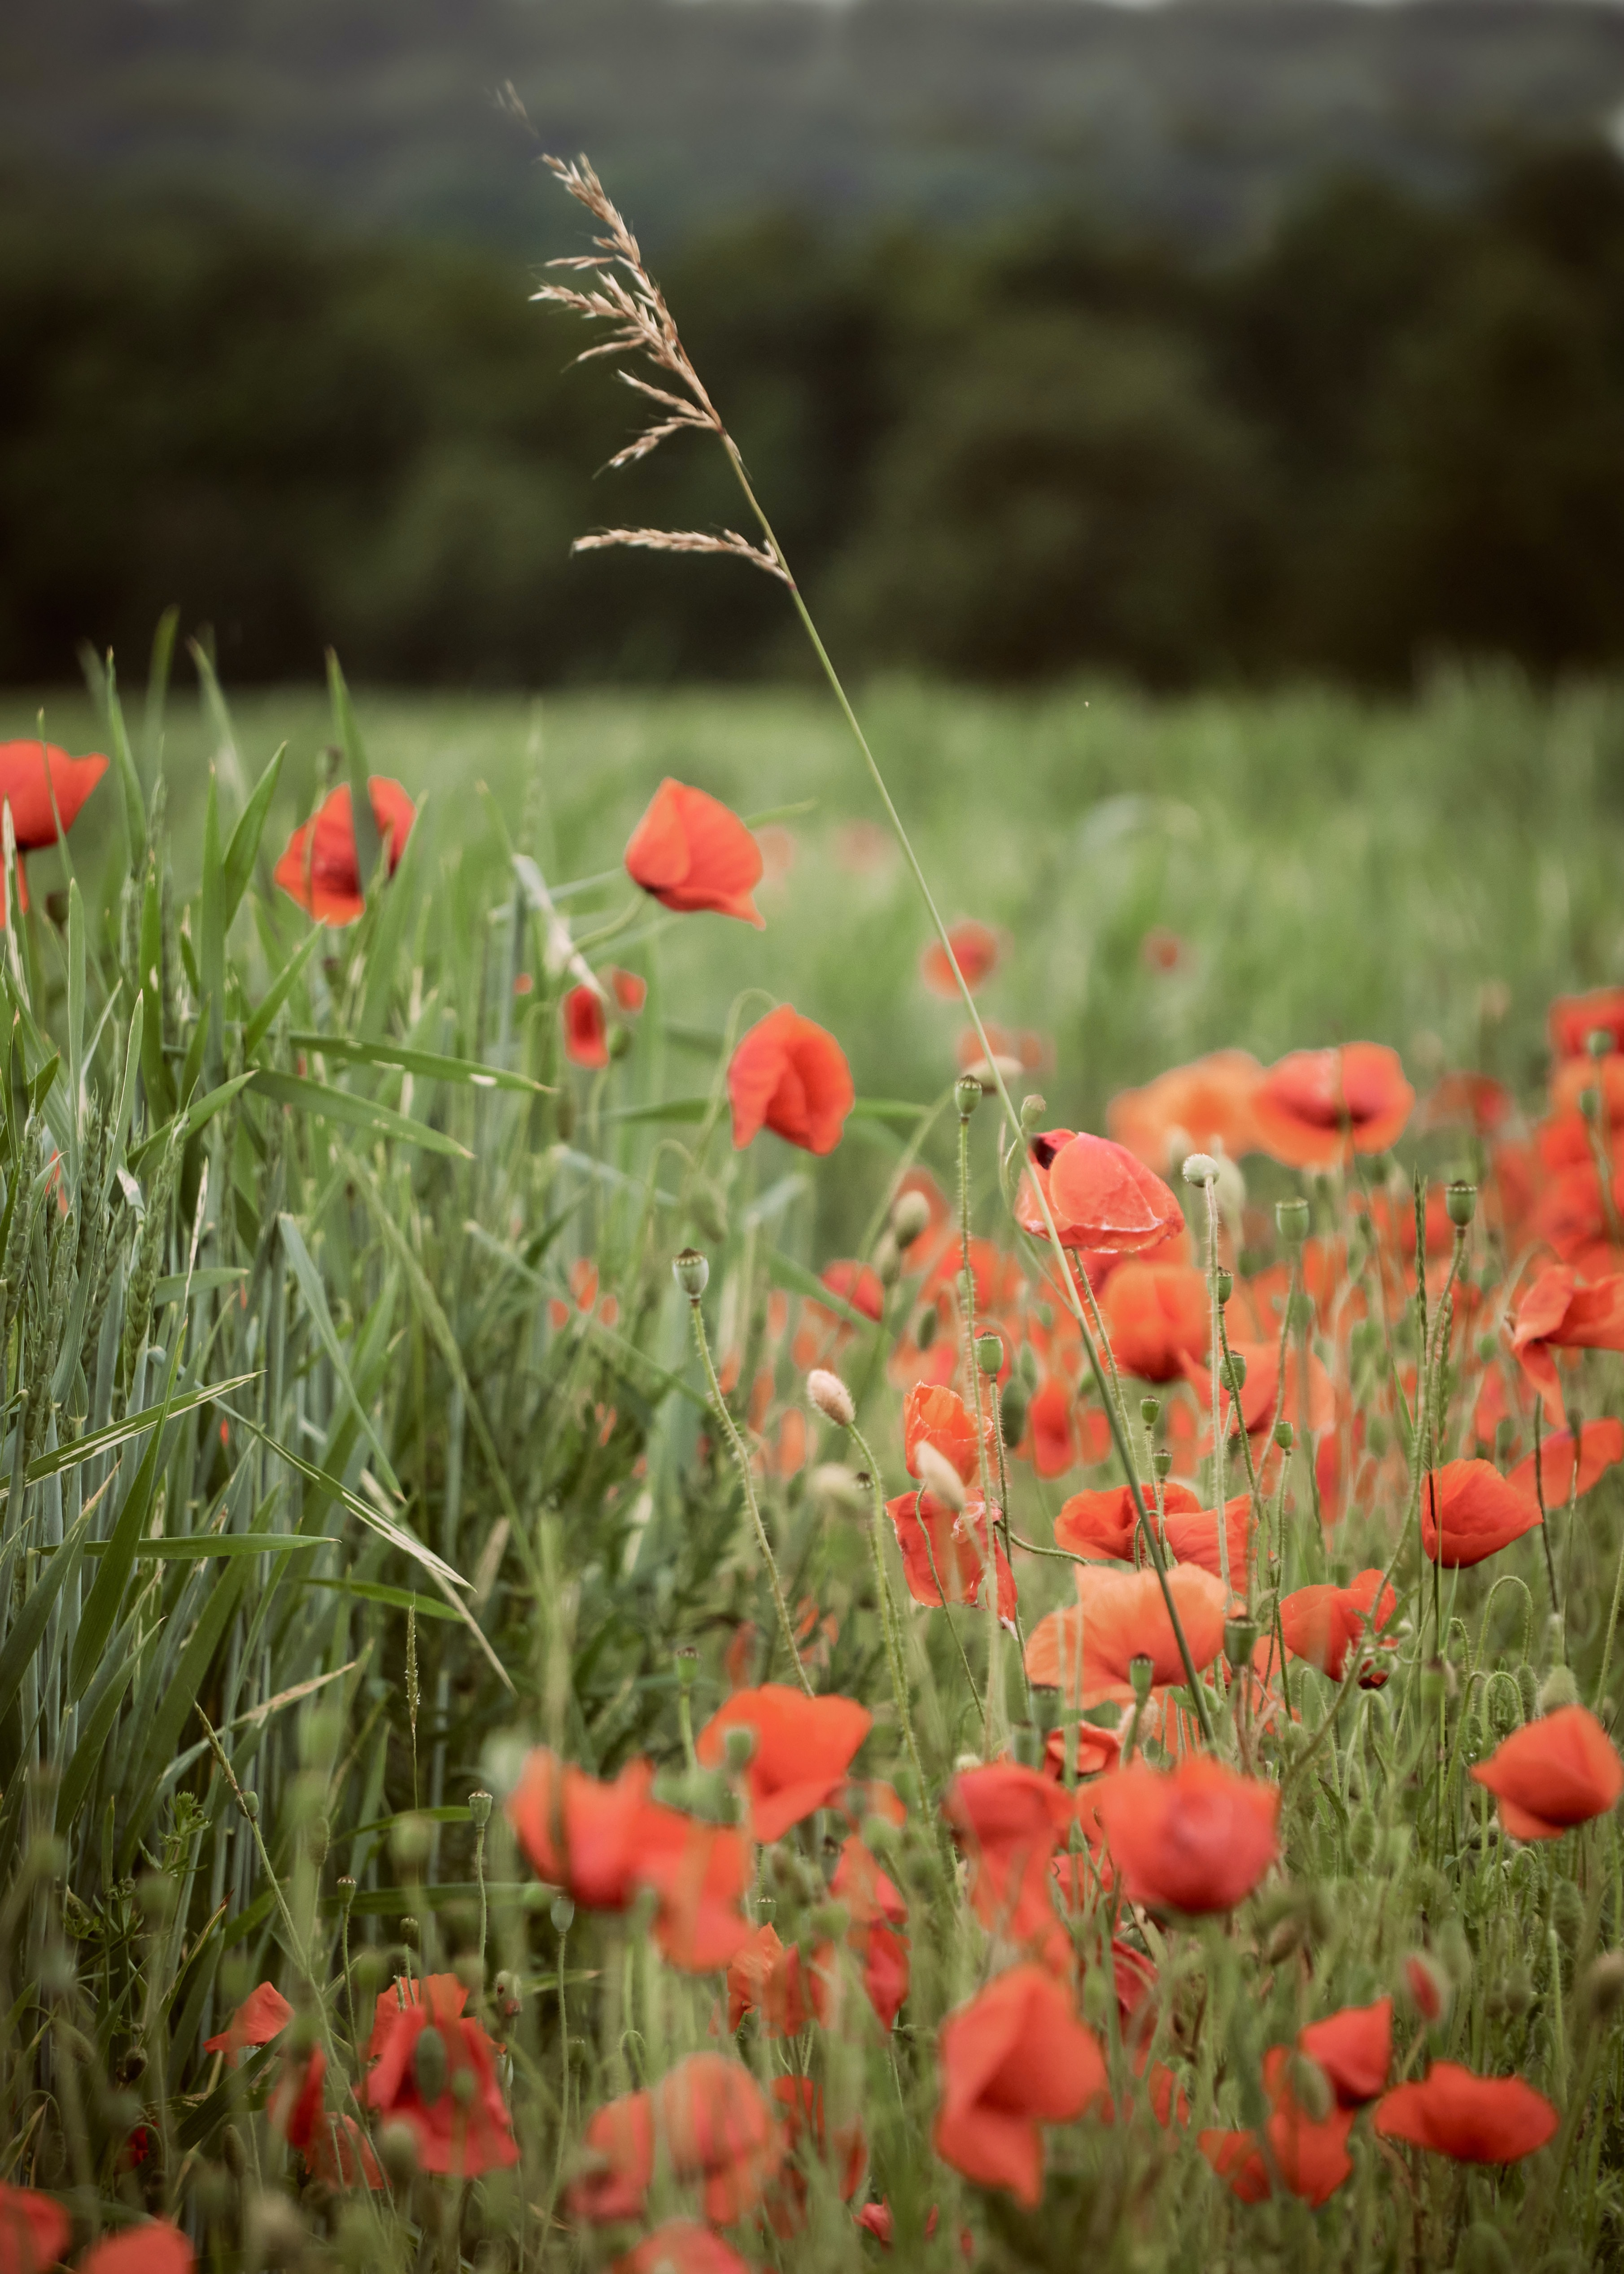 142989 Screensavers and Wallpapers Poppies for phone. Download Flowers, Grass, Poppies, Ear, Wildflowers pictures for free